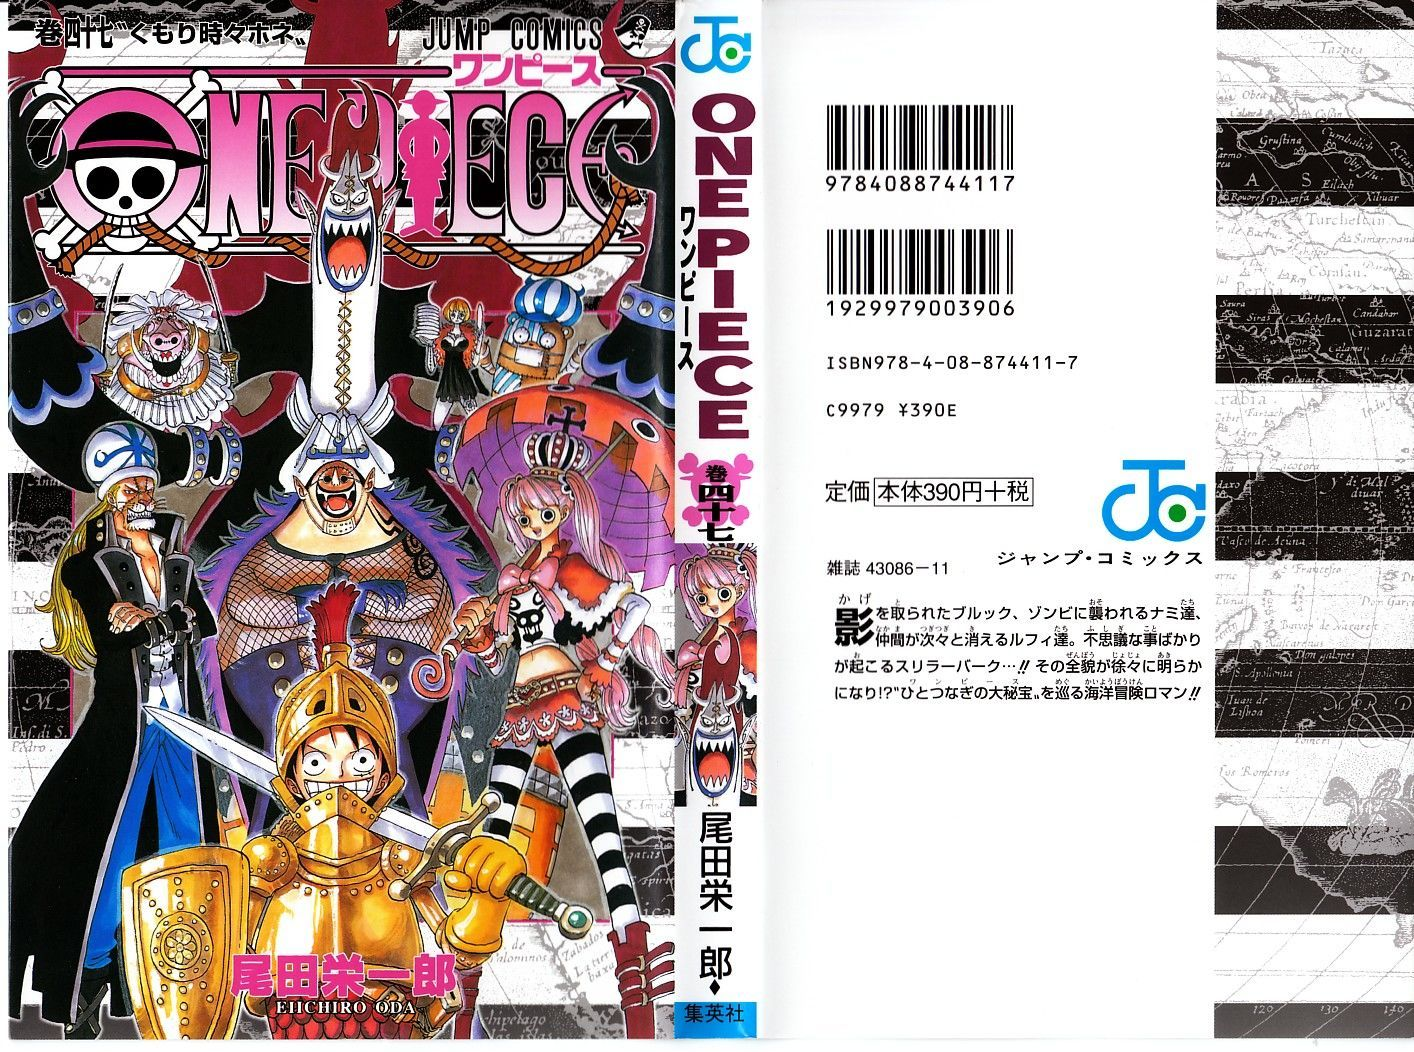 https://im.nineanime.com/comics/pic9/32/96/2798/OnePiece4500391.jpg Page 1